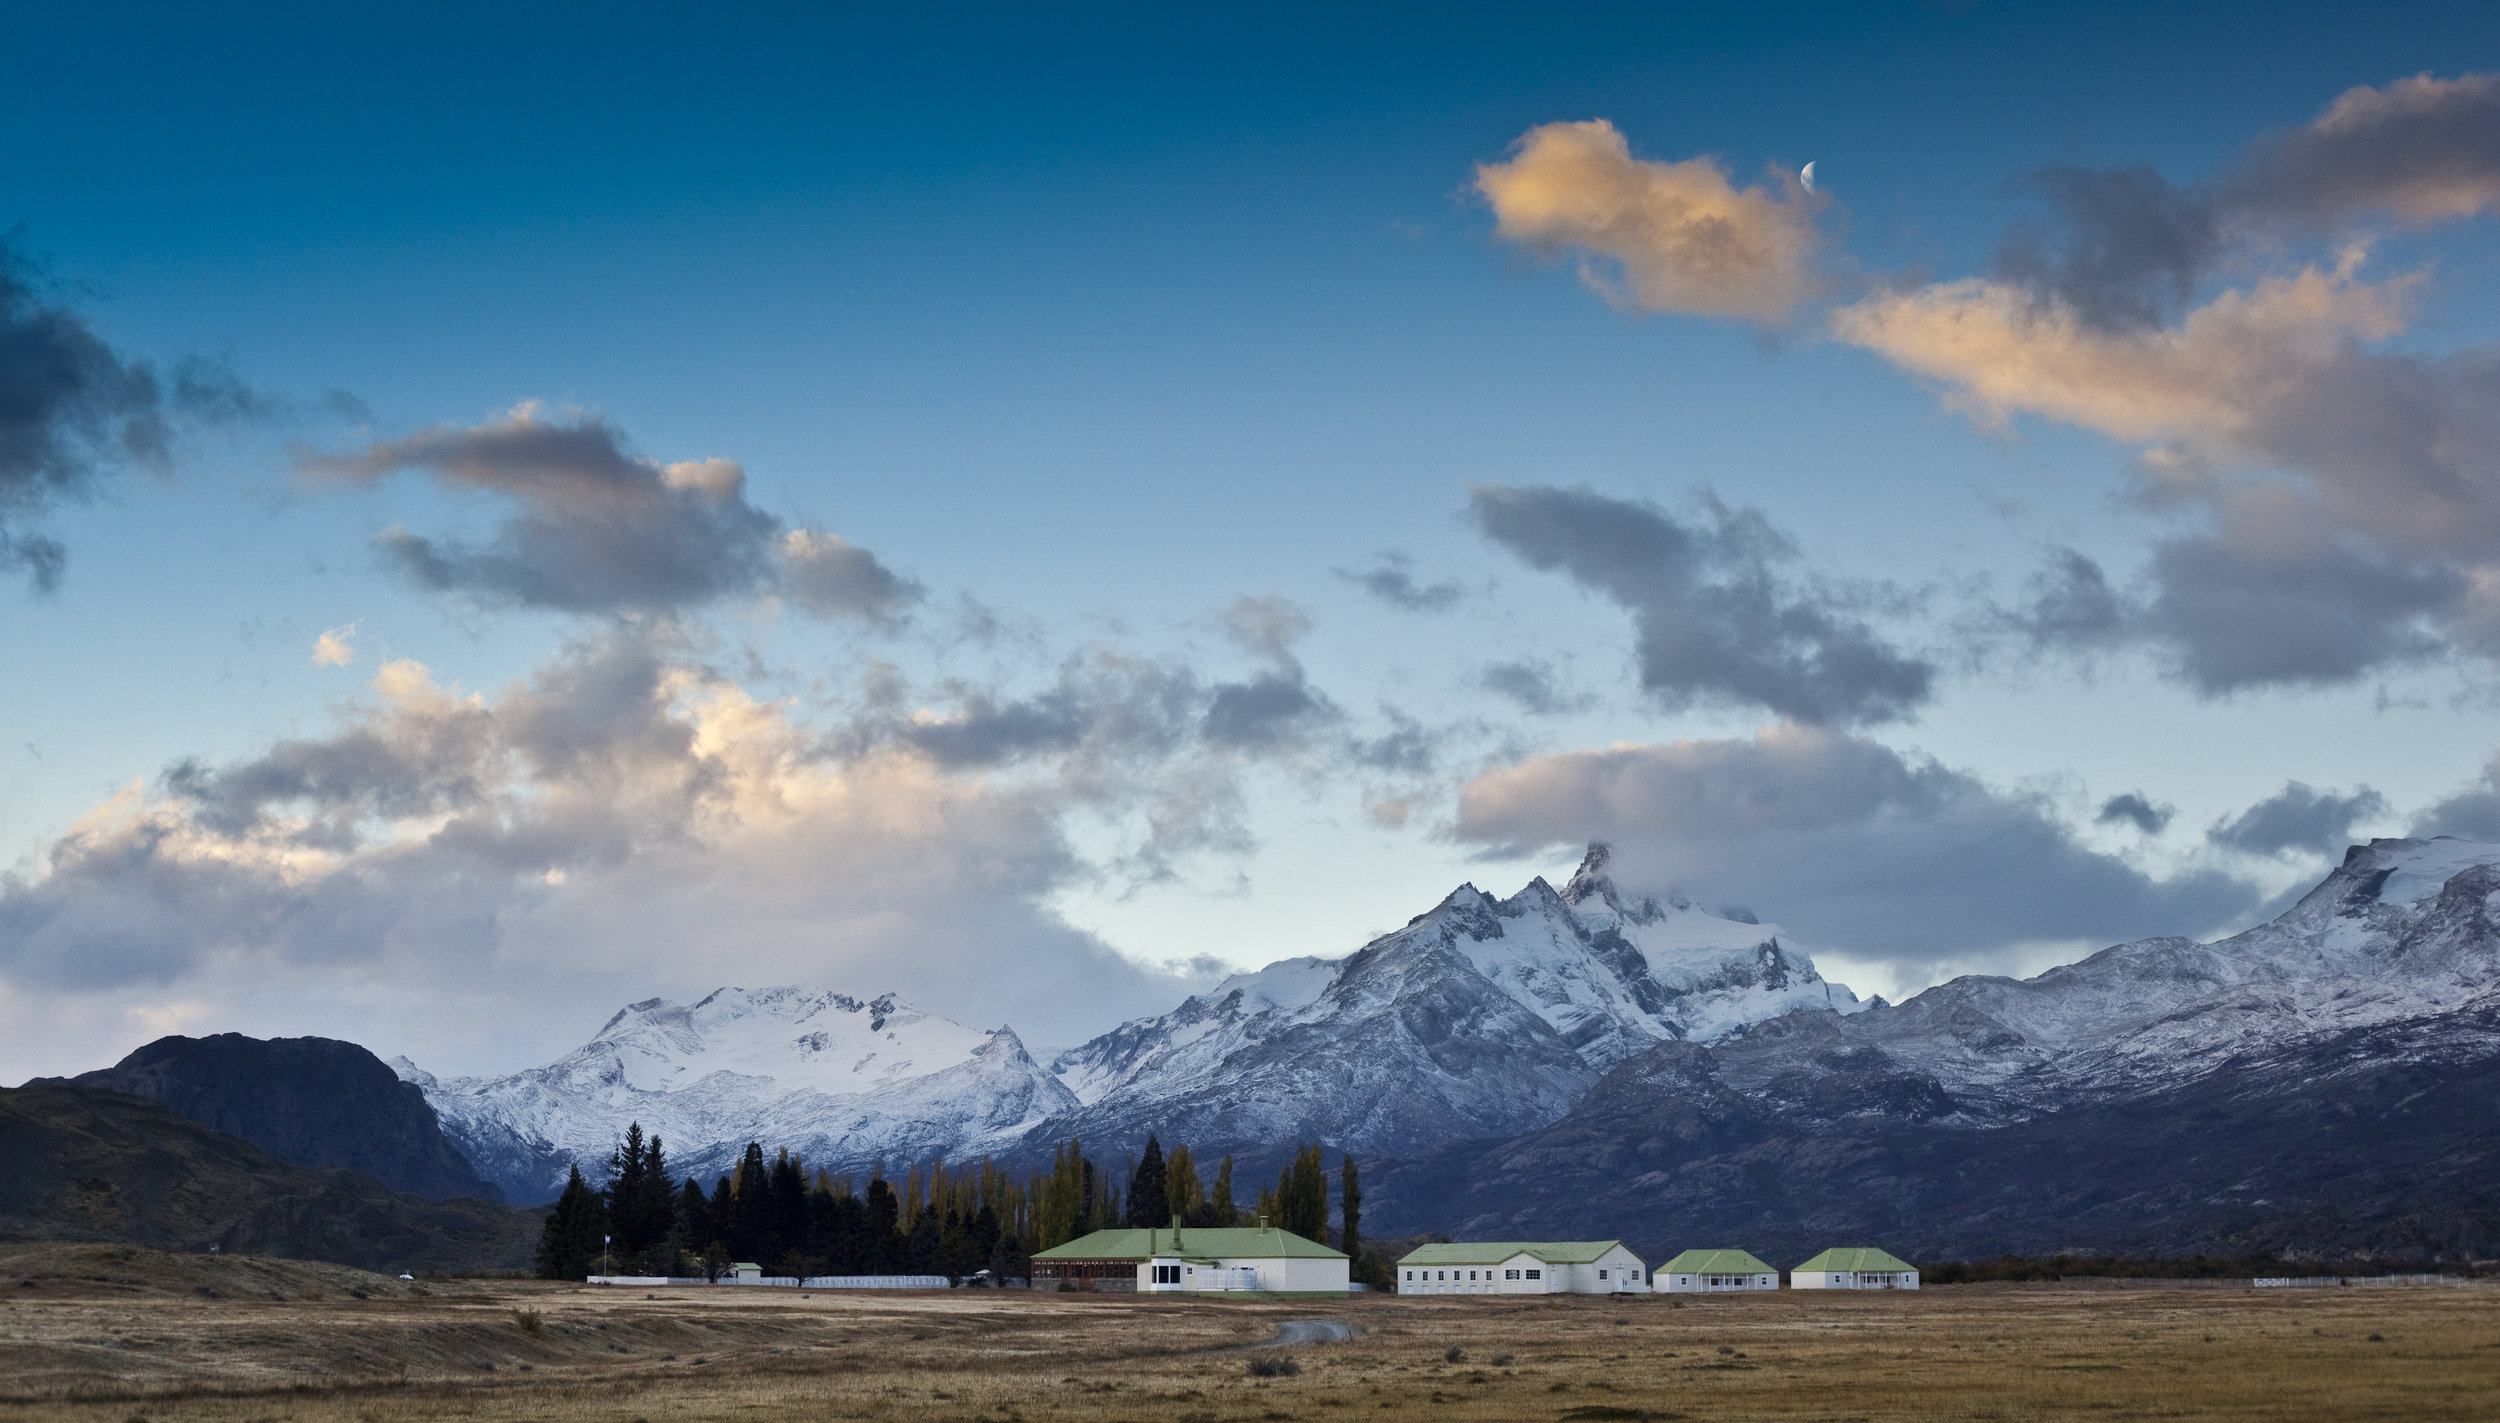 Feel small at Estancia Cristina, surrounded by Patagonia's soaring, jagged peaks